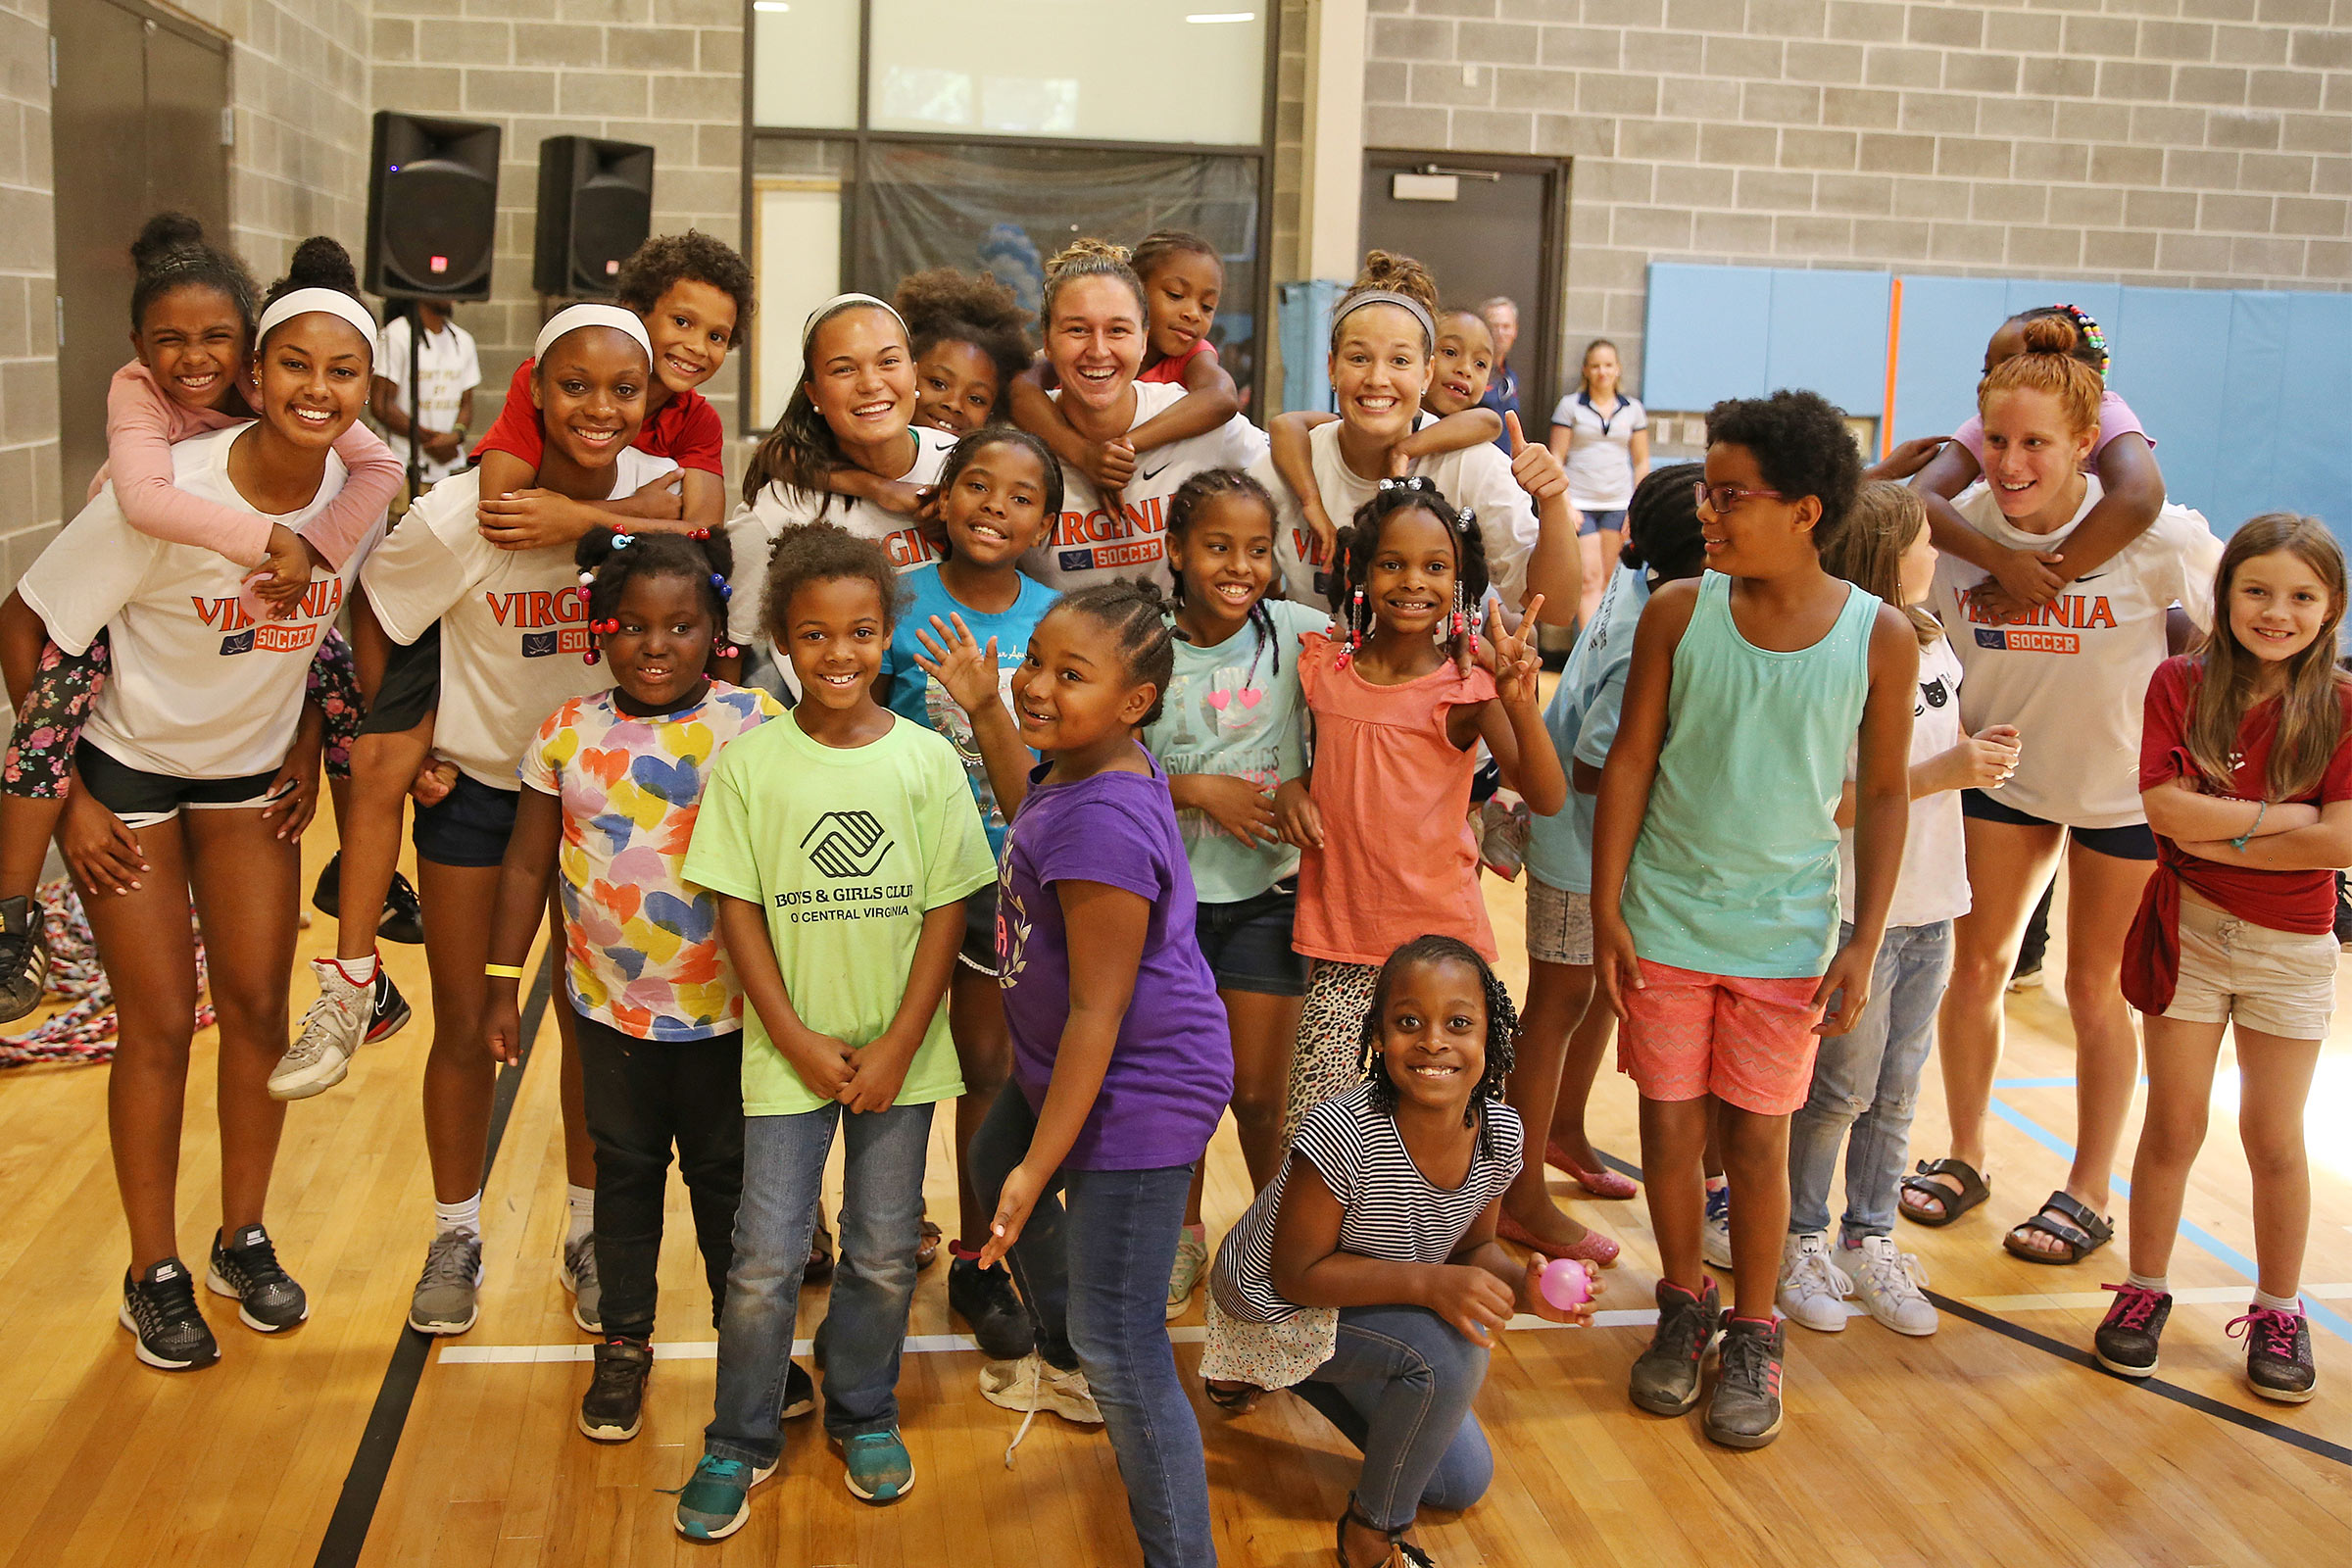 Members of the women's soccer team with children at the Boys and Girls Club Cherry Avenue.